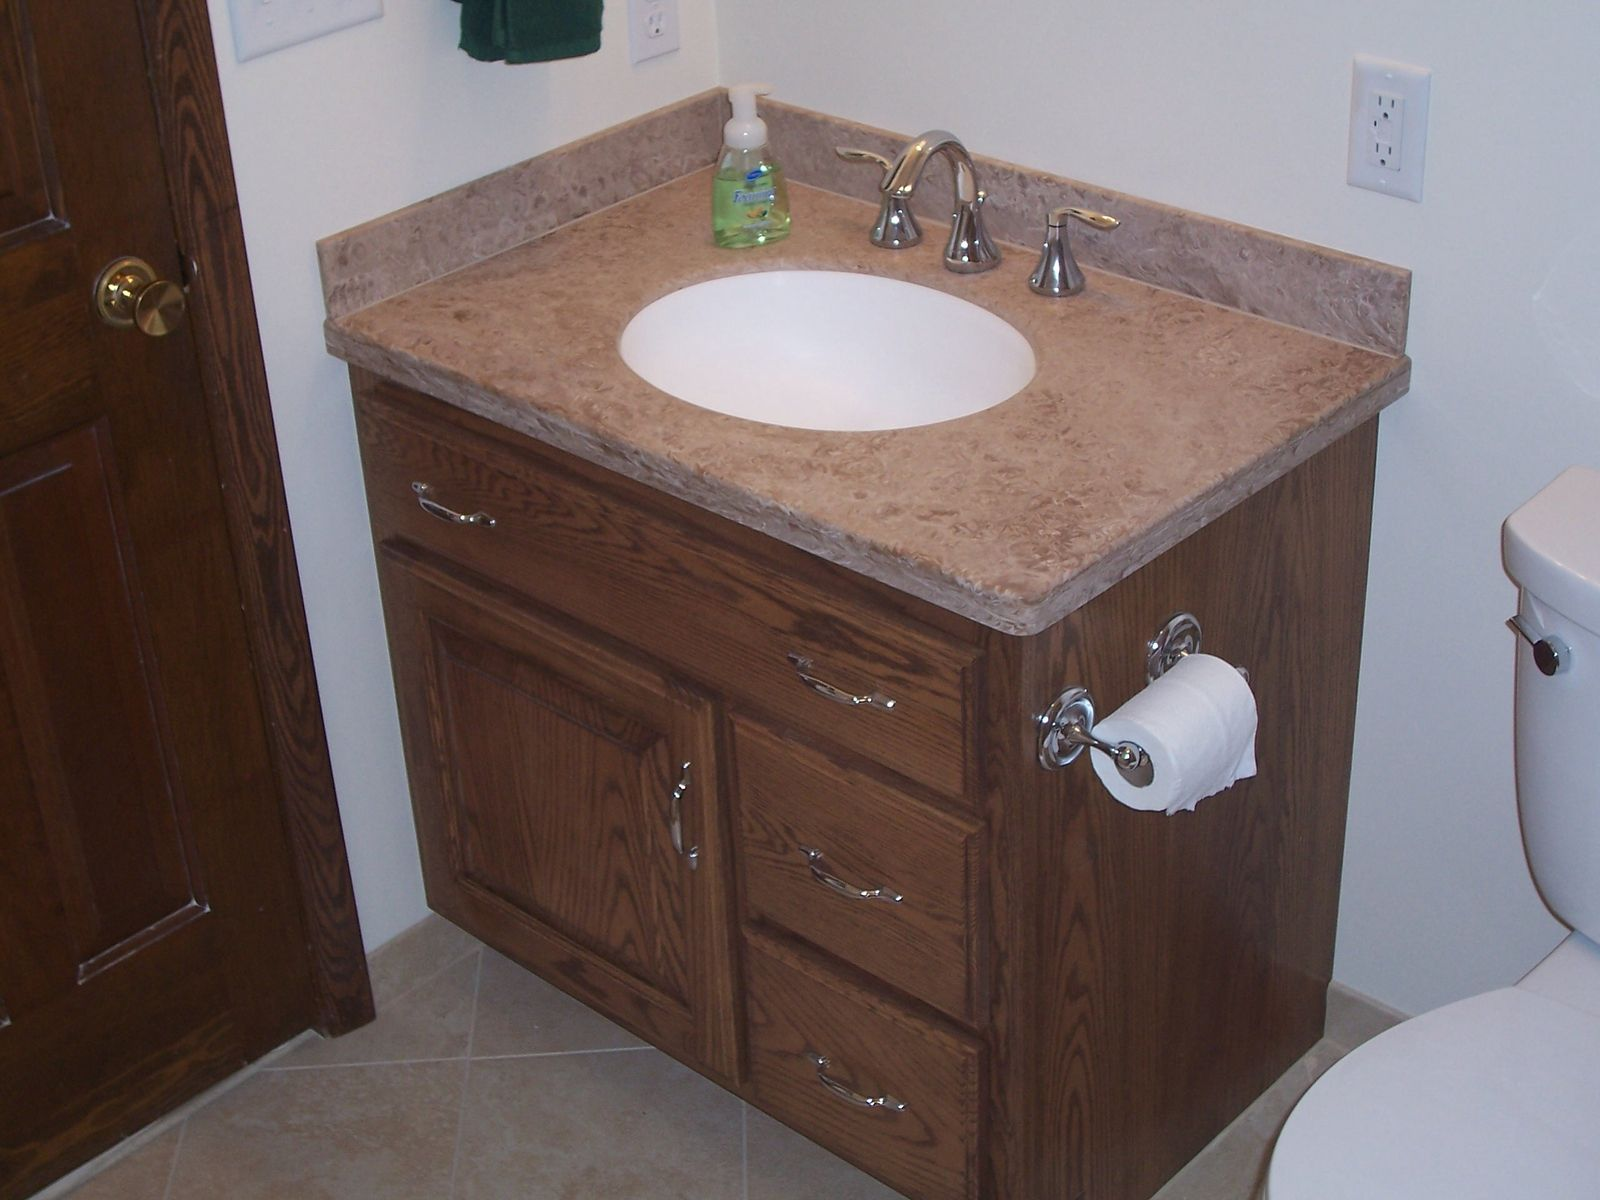 Handmade custom oak bathroom vanity and linen cabinet by jeffrey william construction inc - Custom made cabinet ...